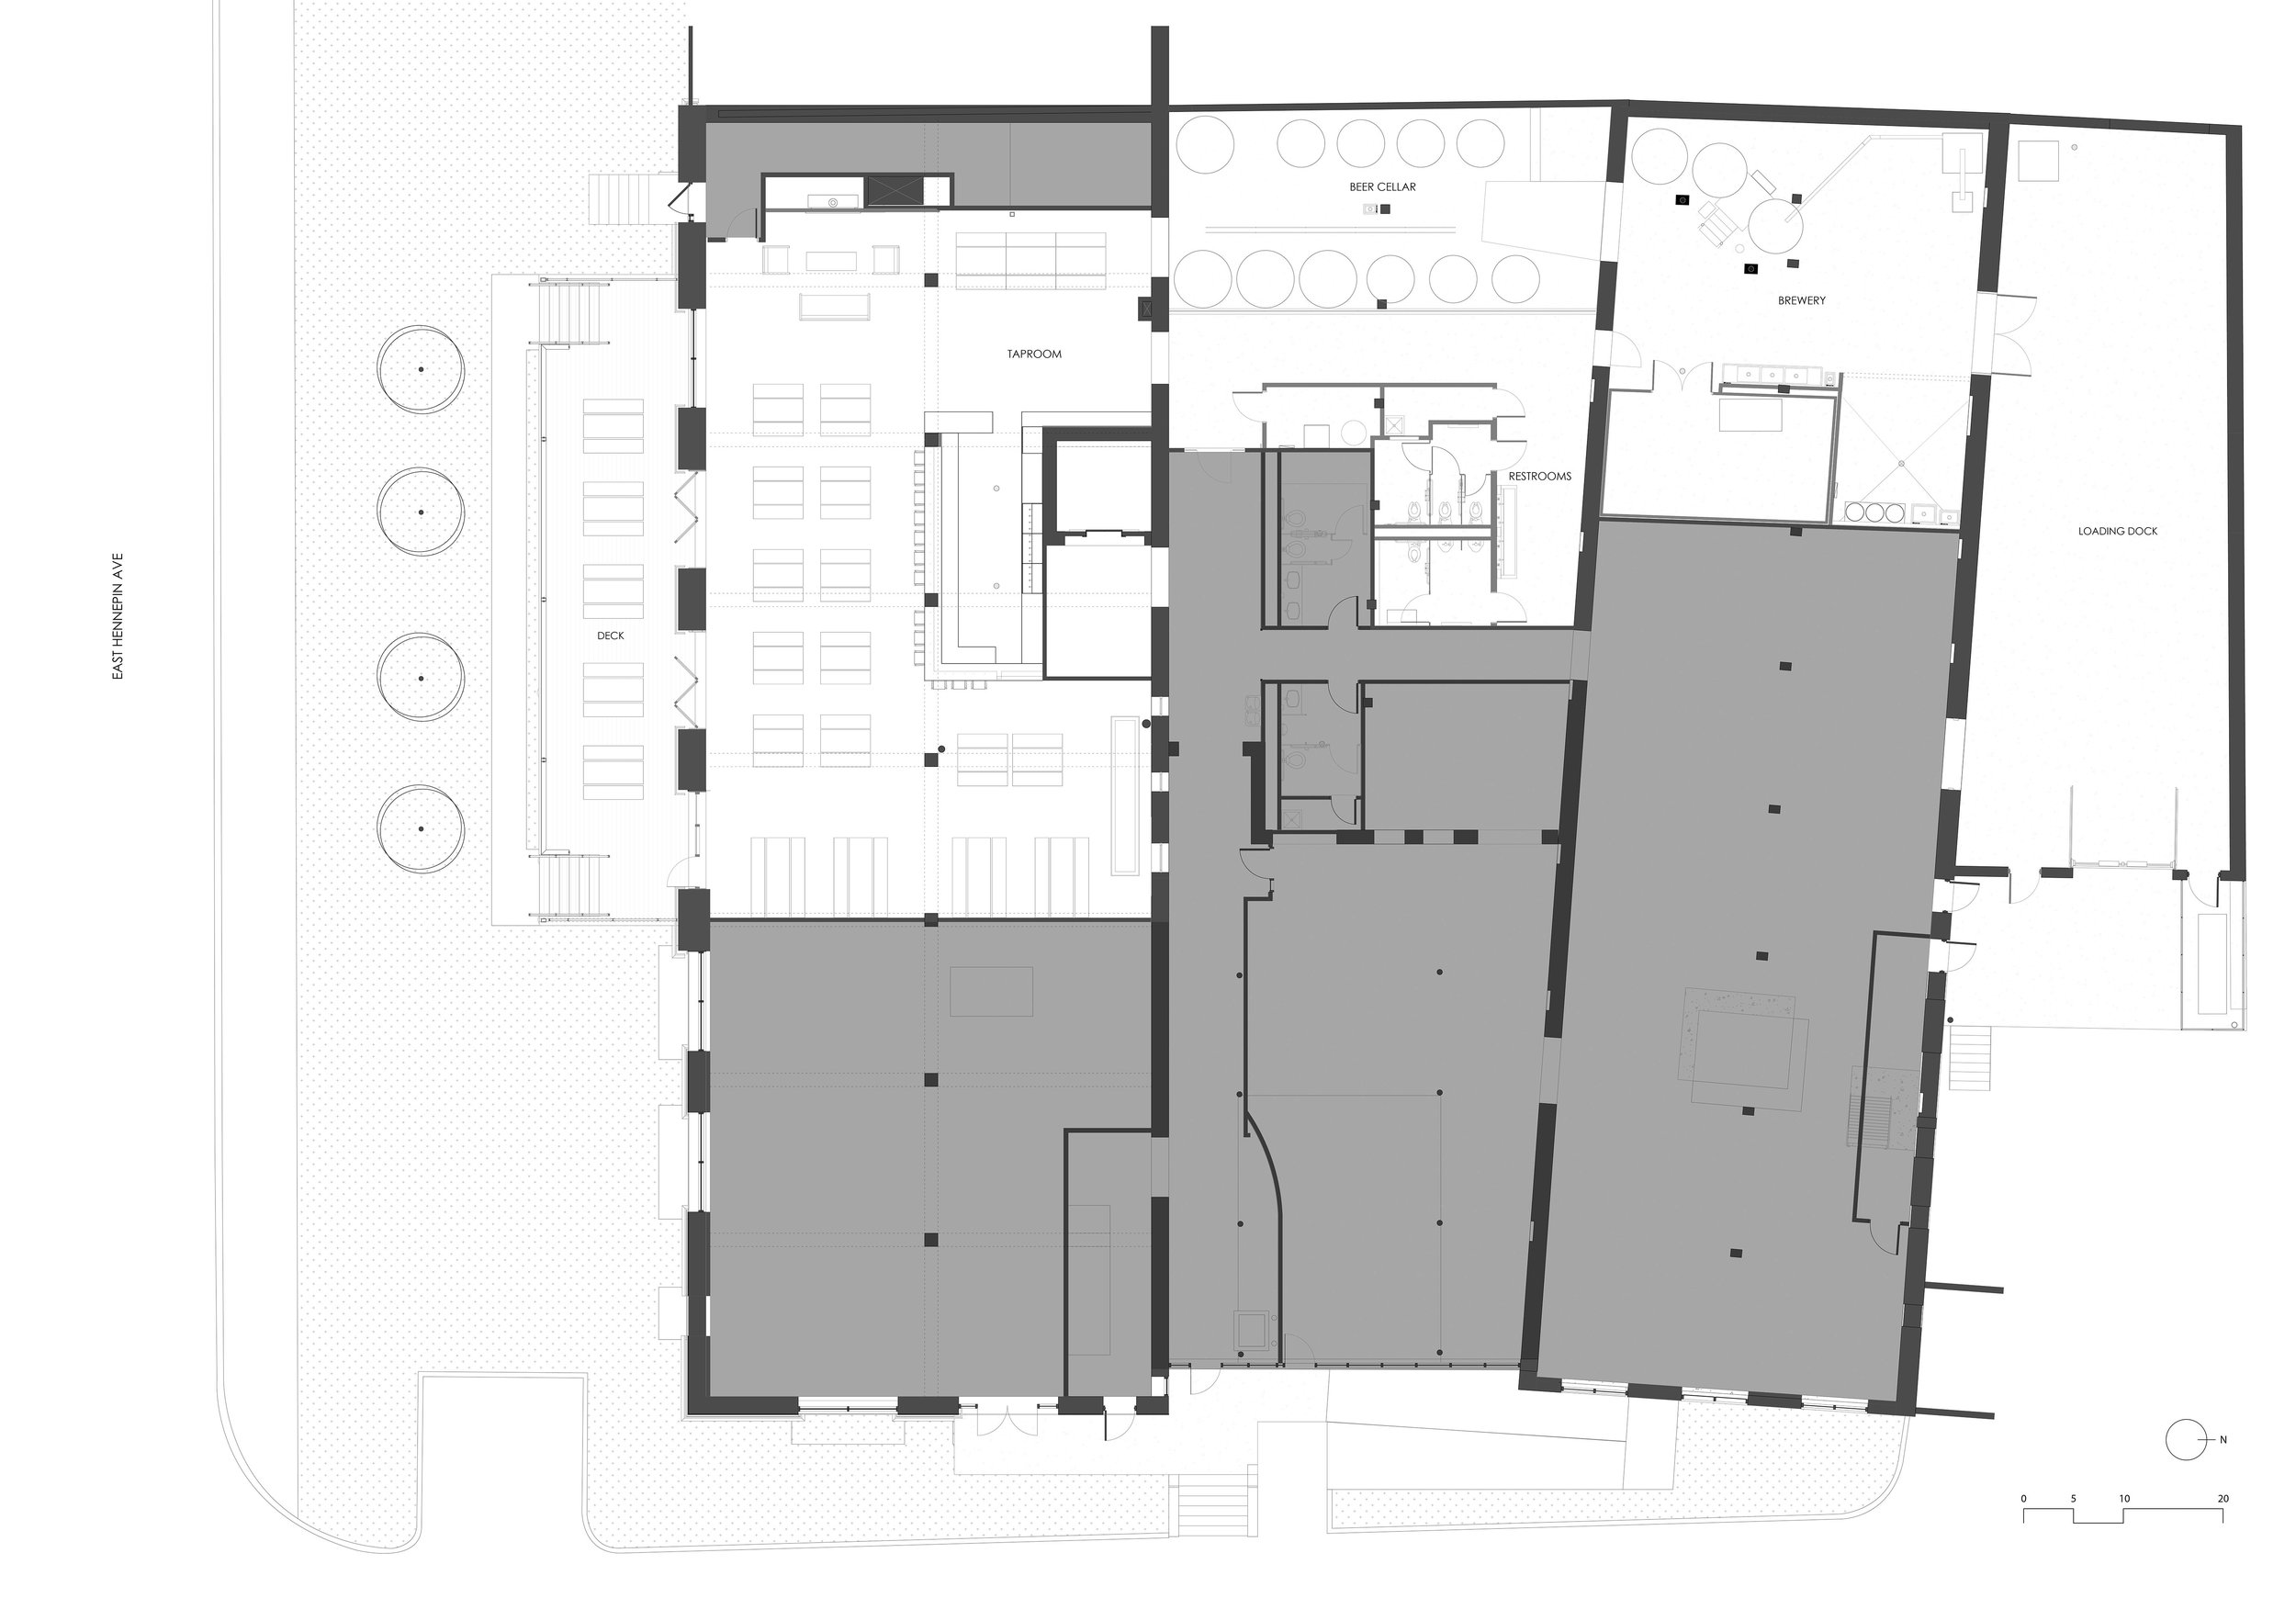 Building plan of existing context and remodeled brewery spaces of Headflyer Brewing in Minneapolis.